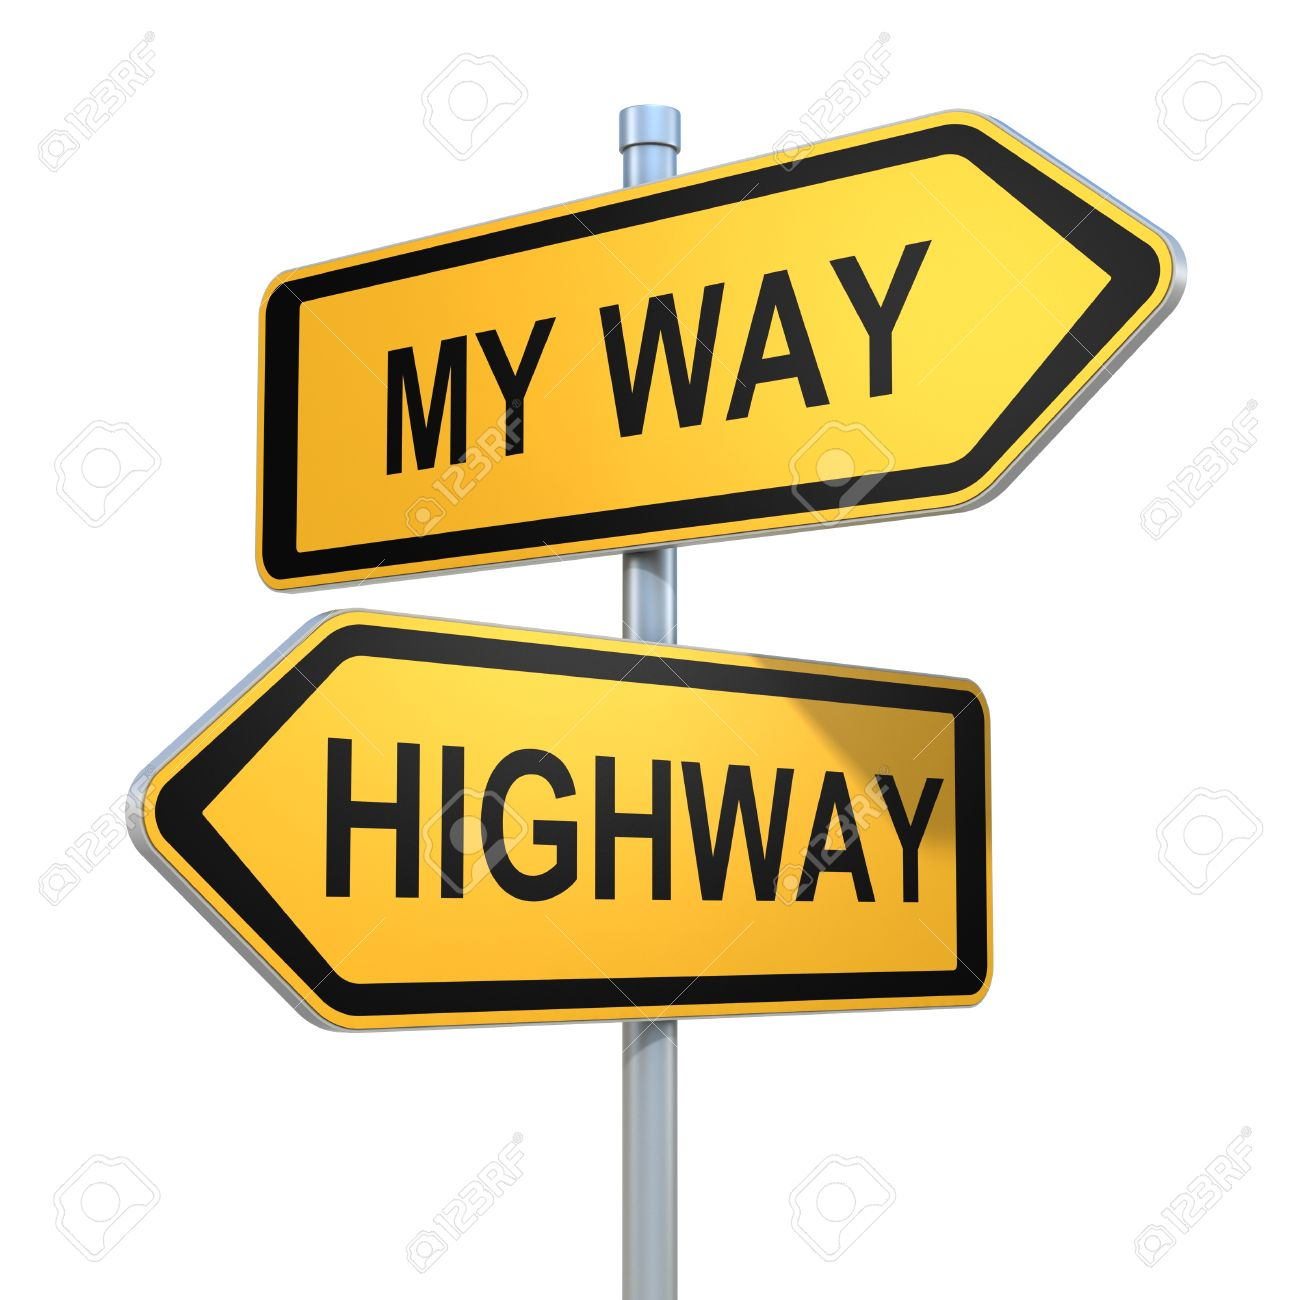 My way clipart picture black and white Highway Clipart | Free download best Highway Clipart on ... picture black and white